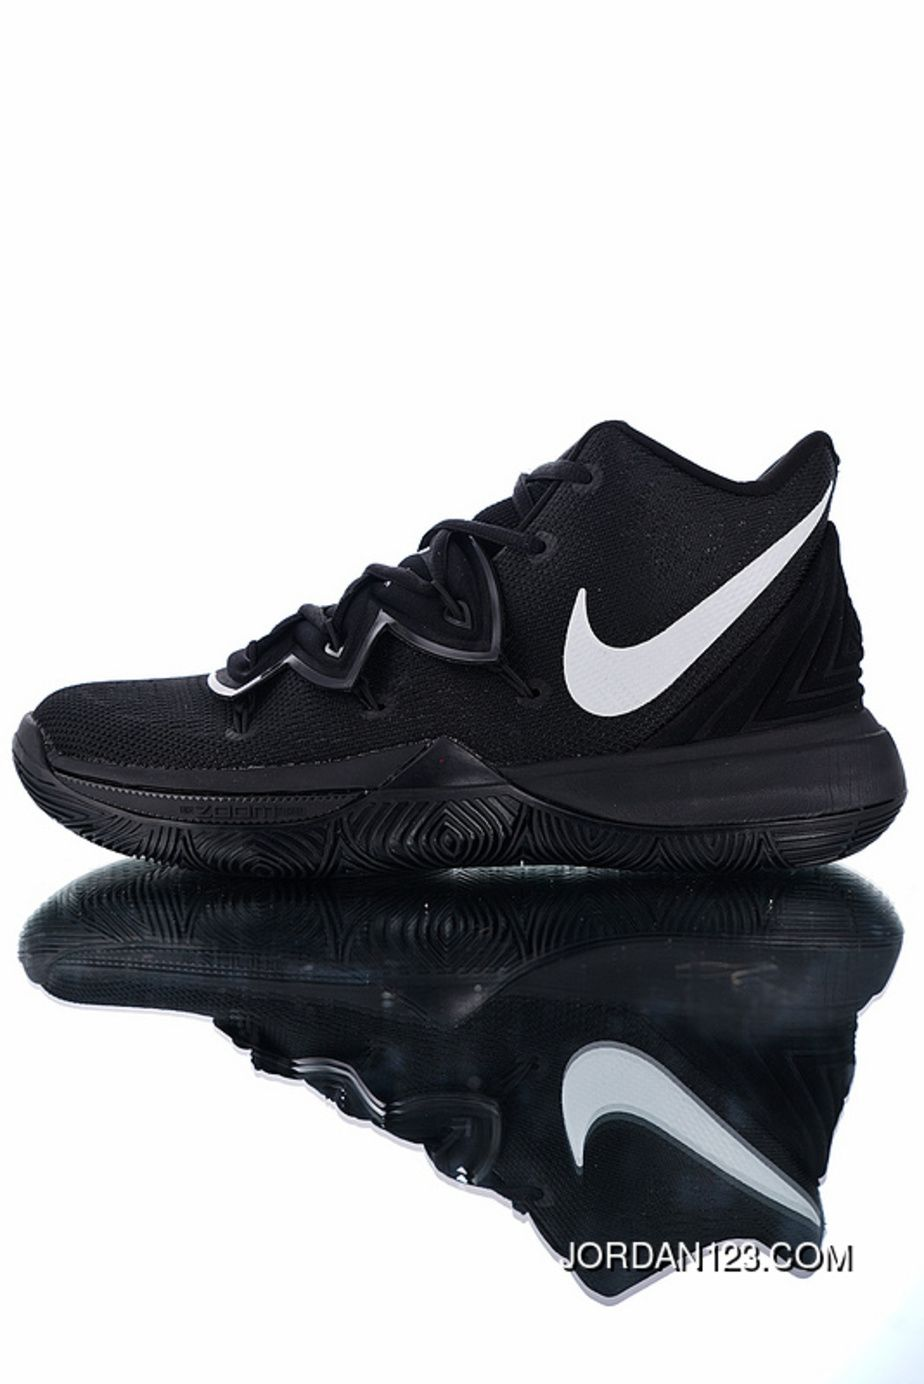 P21 The Original Here Right Version Large Area Of Air Zoom Turbo Zoom Science And Technology With Nike Kyrie 5 Irving 5 Indoor Battle Basketball Shoes Black Red Nike Kyrie Black